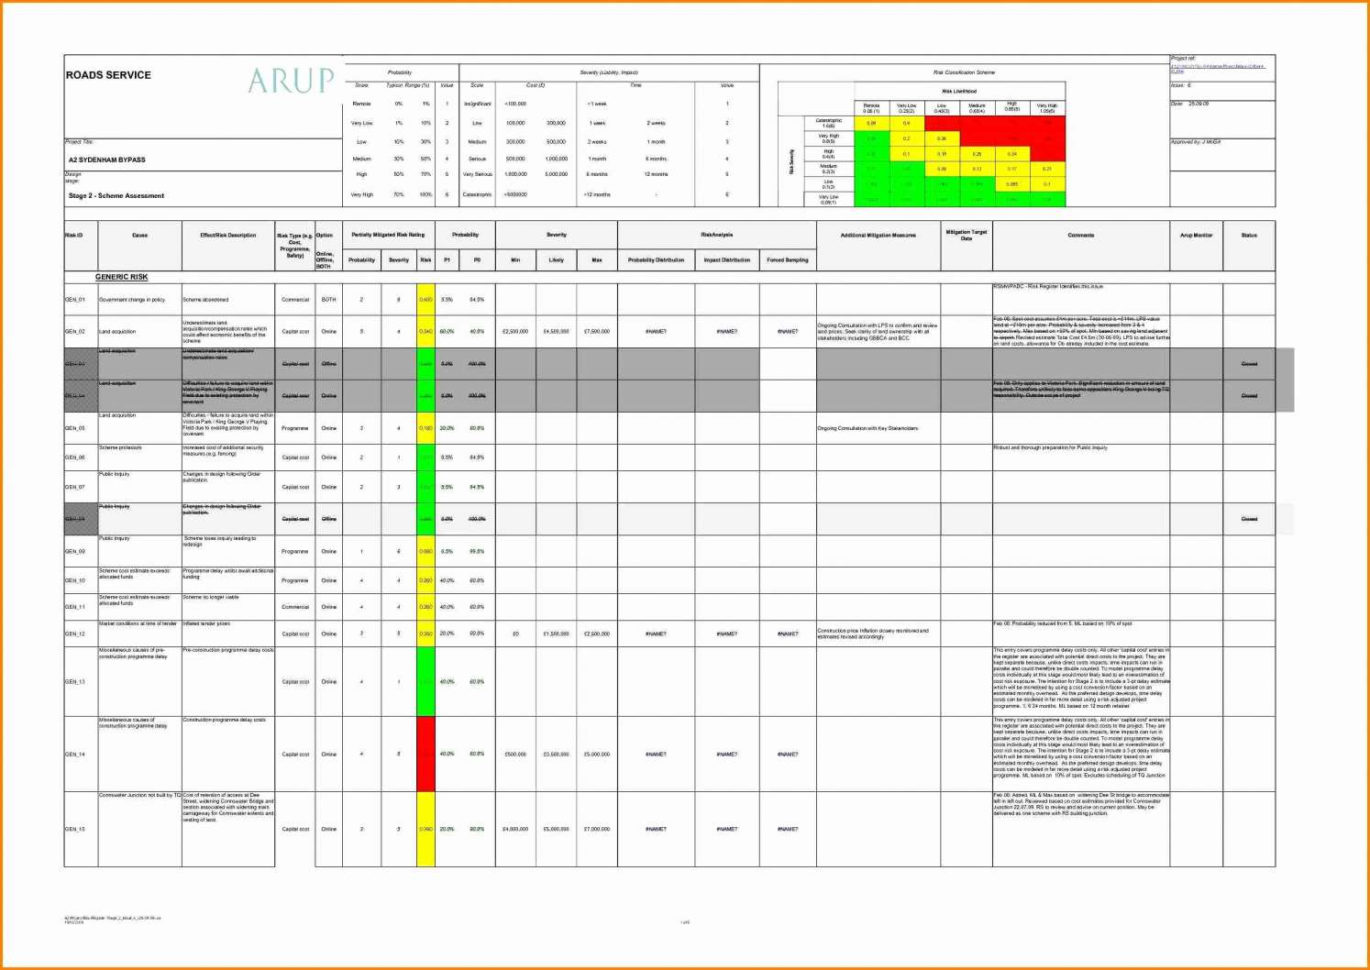 Resource Allocation Tracking Spreadsheet With Regard To Resource Tracking Spreadsheet Excelct Management And Allocation